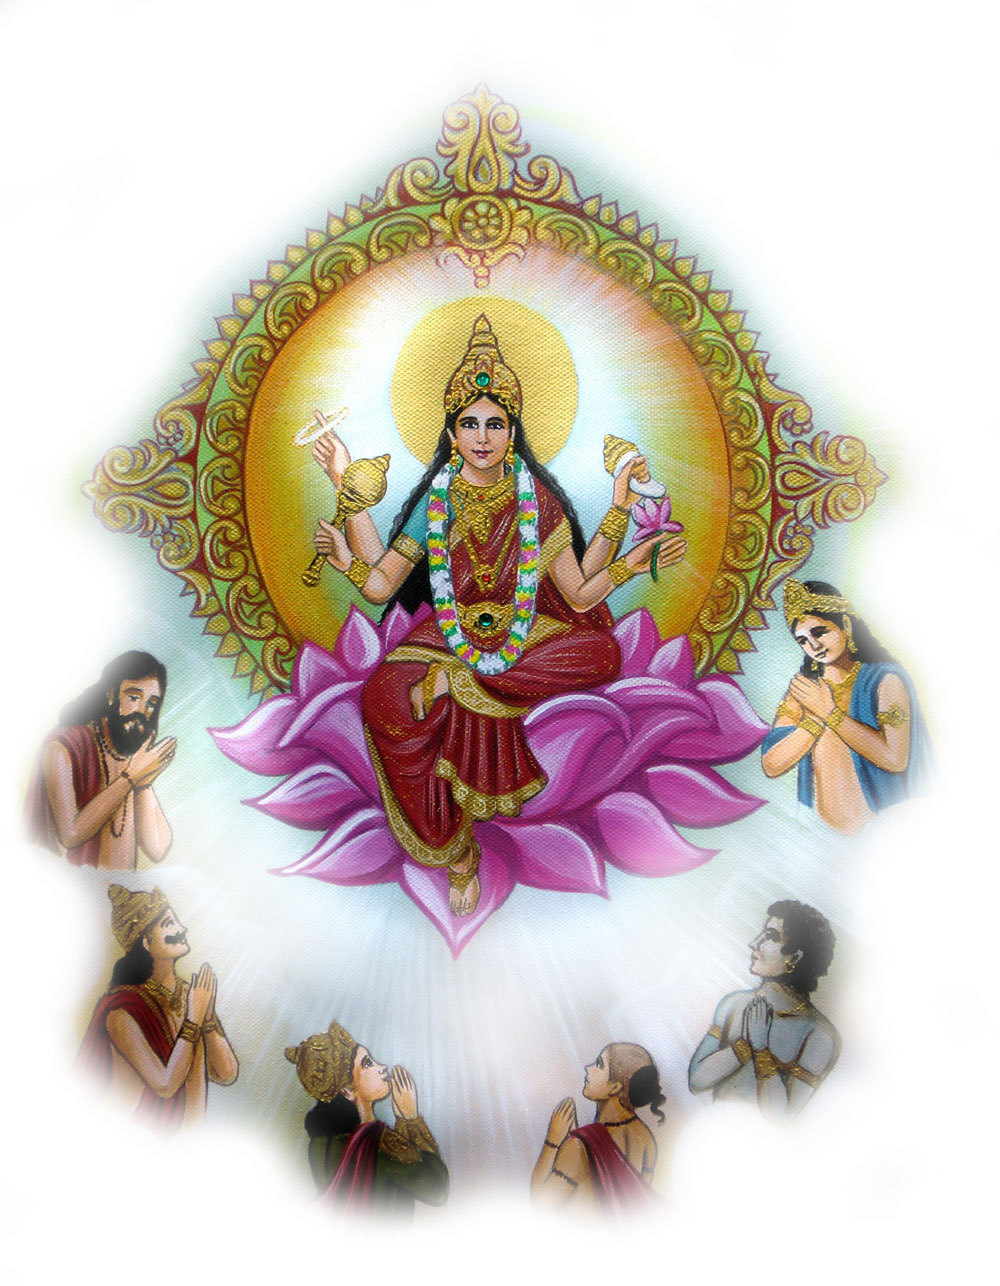 Siddhidatri Transparent - Goddess Nav Durga Transparent Images